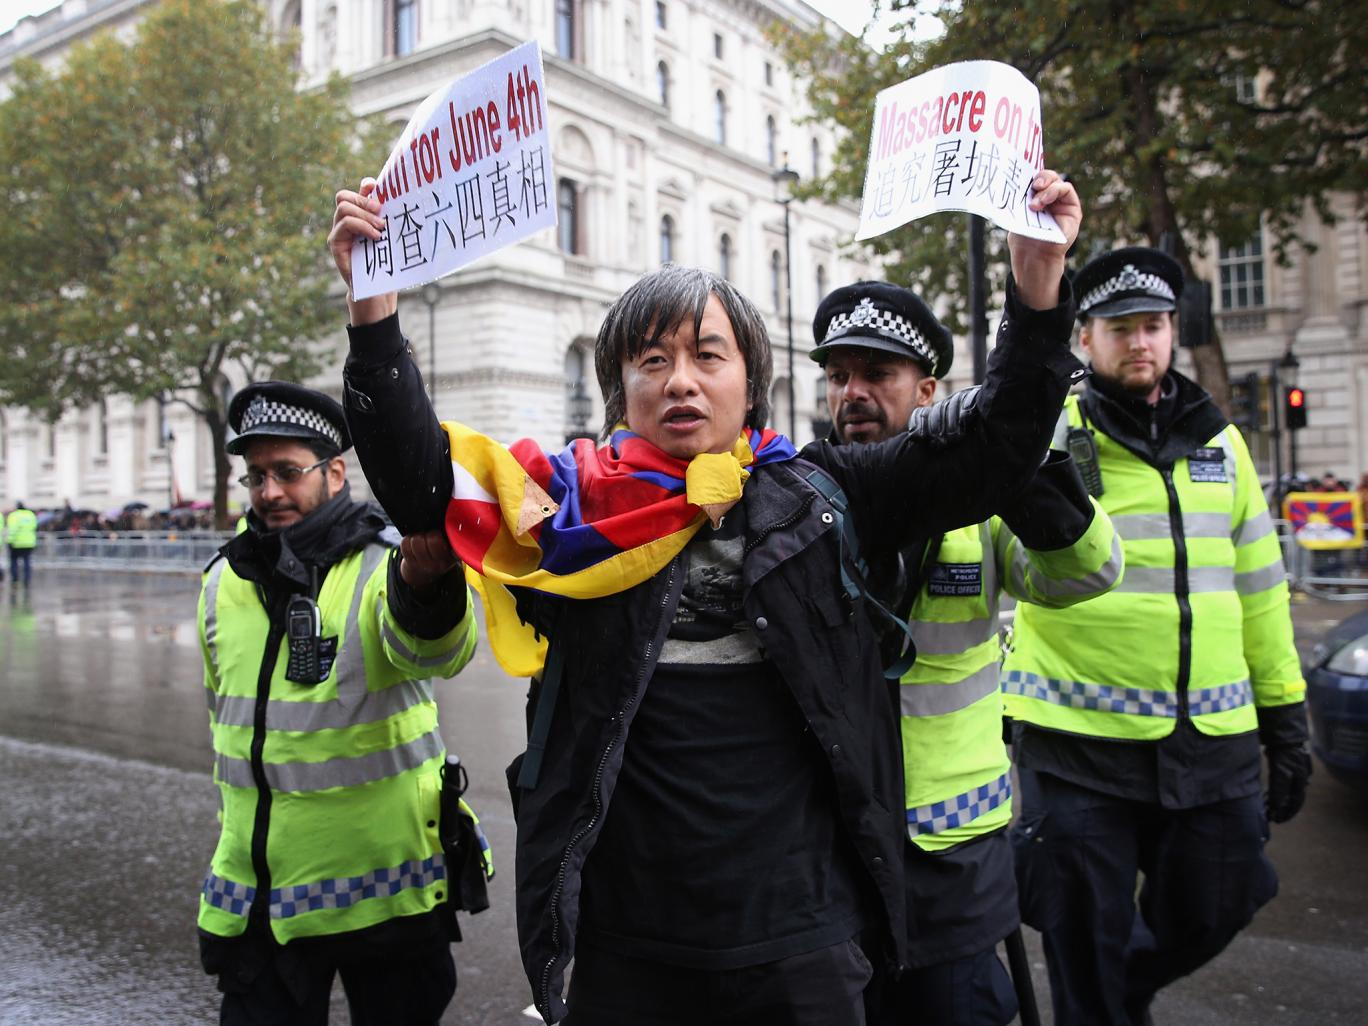 Shao Jiang protests outside Downing Street on Wednesday ahead of the arrival of Chinese President Xi Jinping. (Photo courtesy: independent.co.uk)